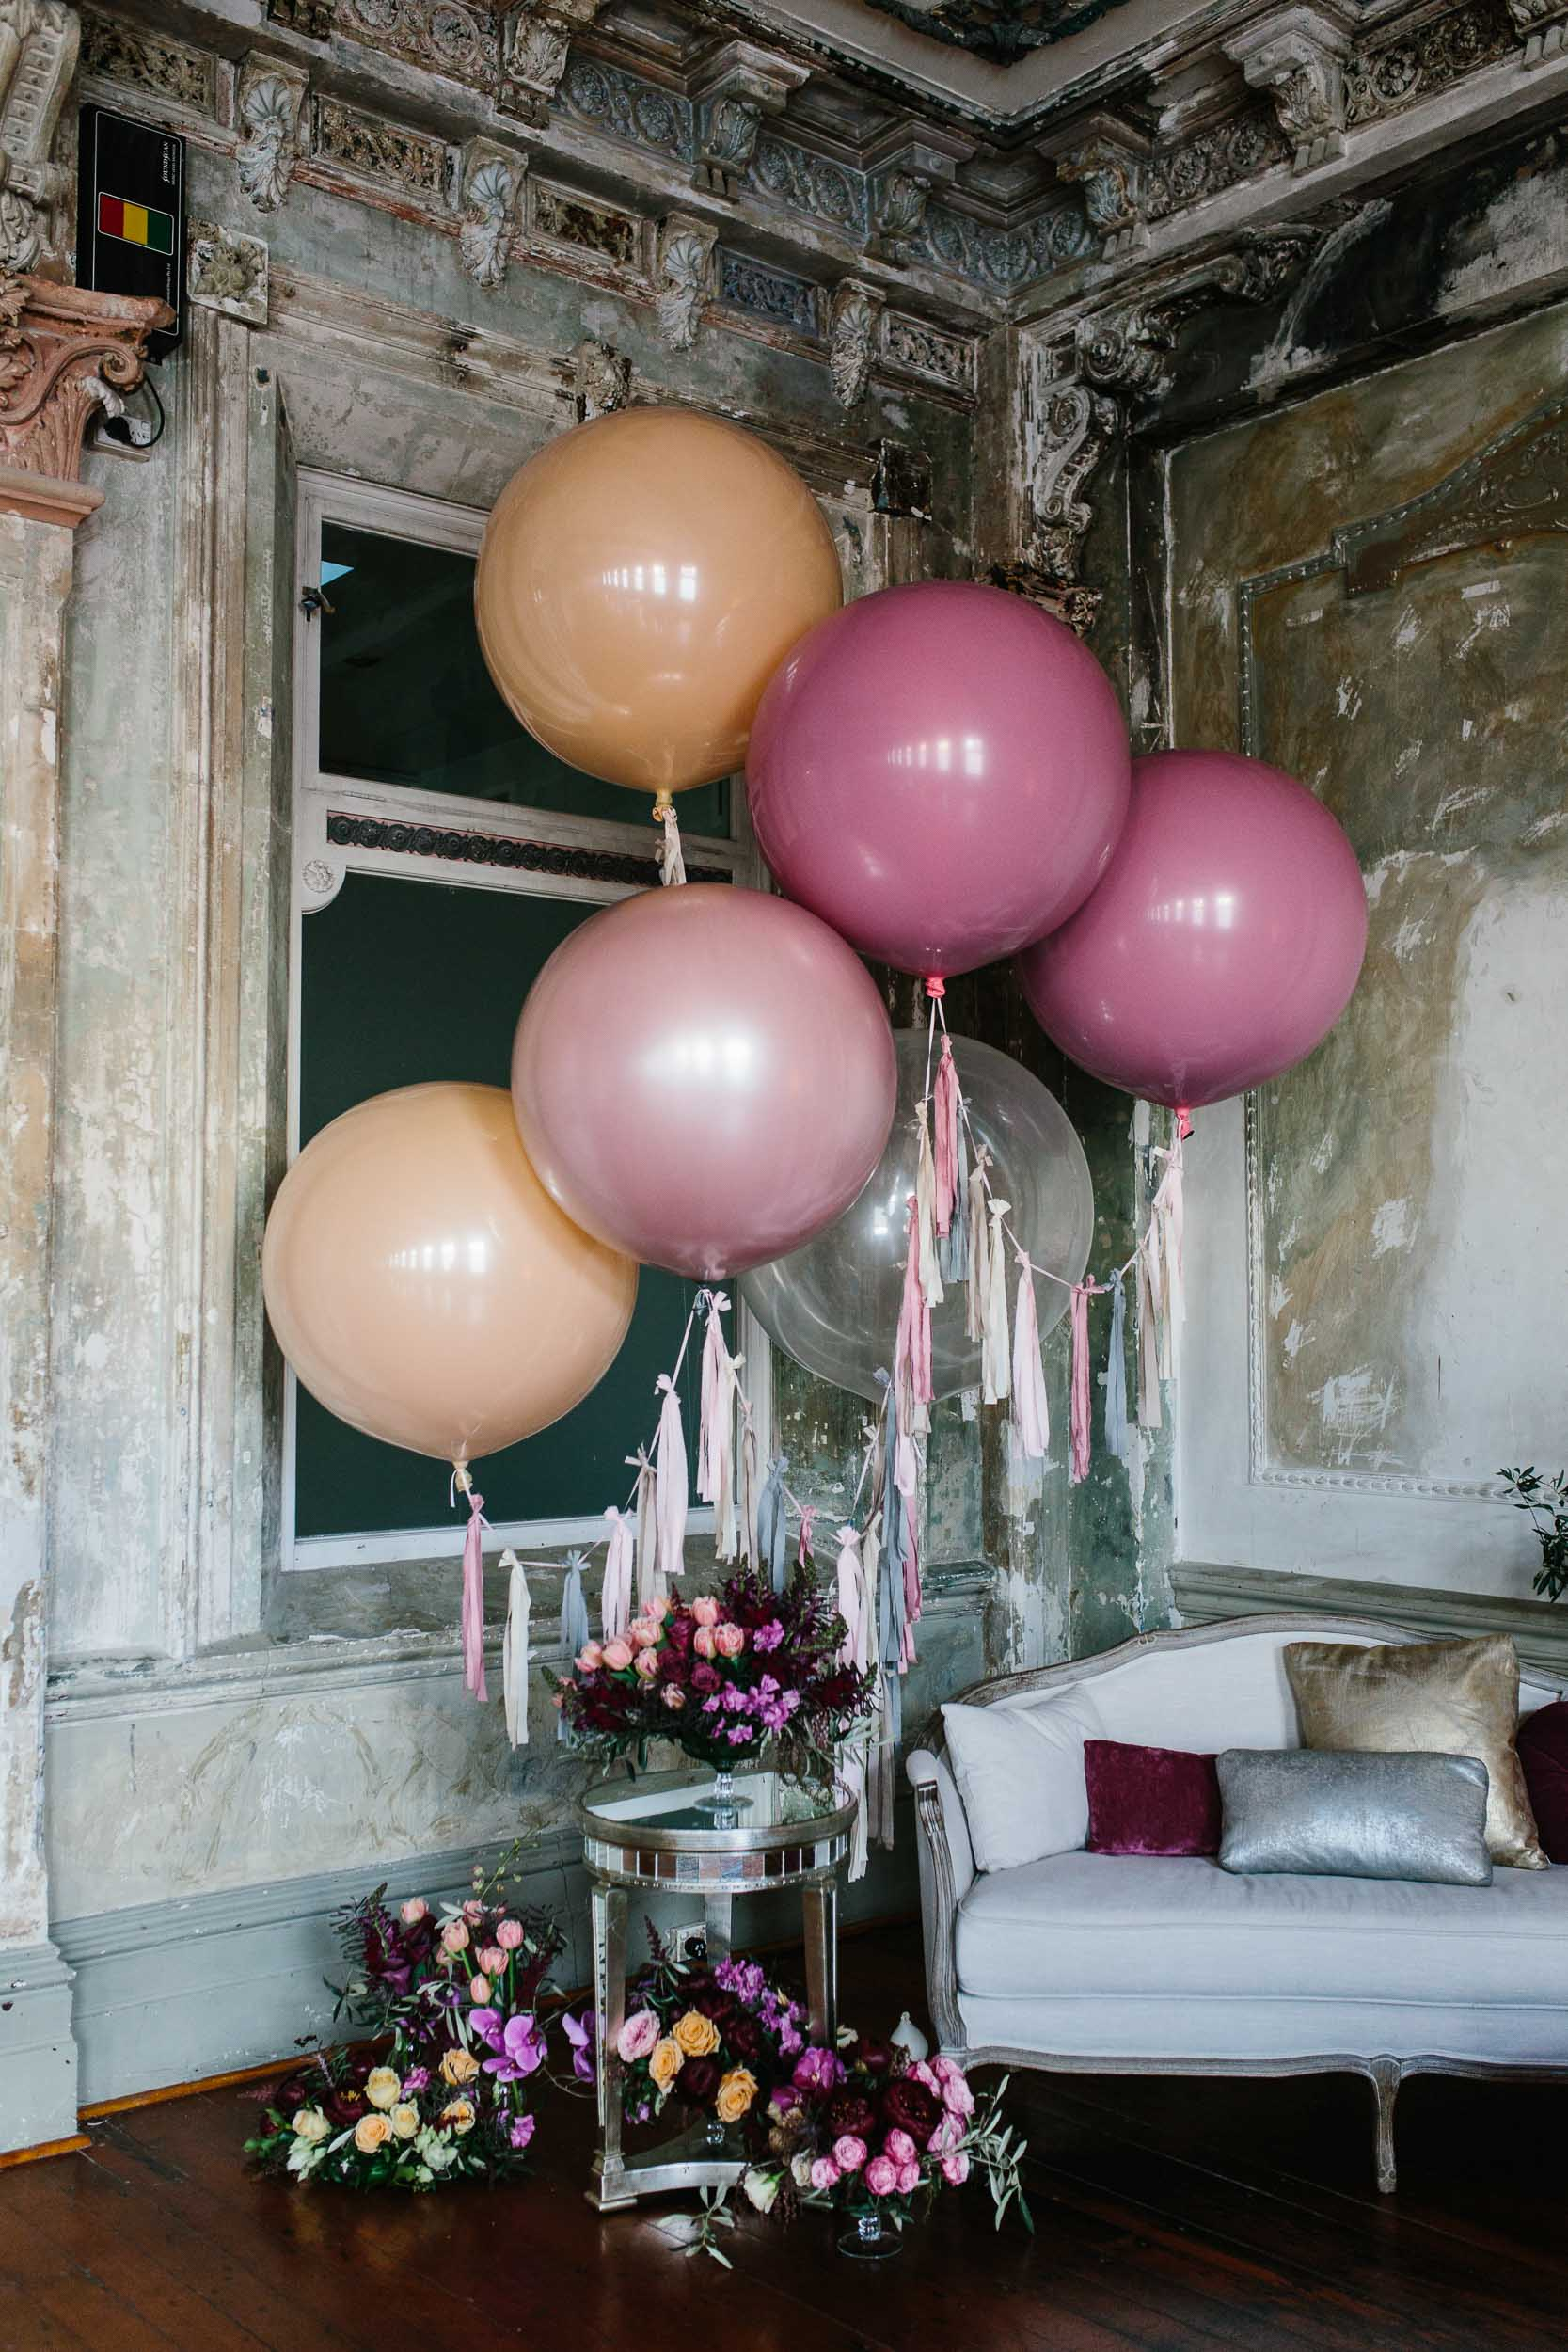 Kas-Richards-Party-with-Lenzo-Witchery-Kids-George-Ballroom-Event-188.jpg